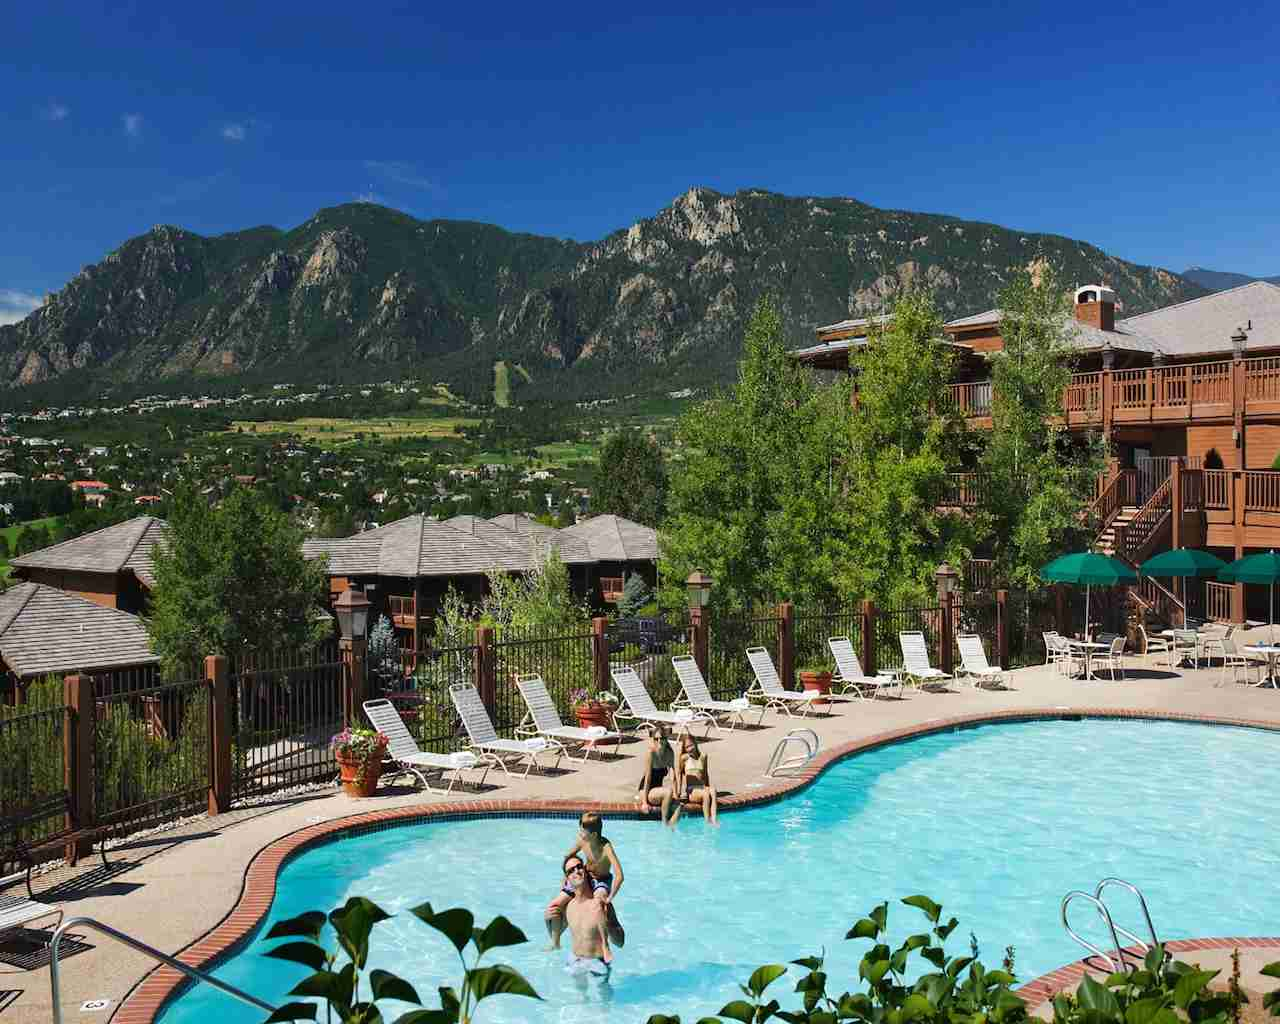 Pool at the Cheyenne Mountain Resort in Colorado Springs